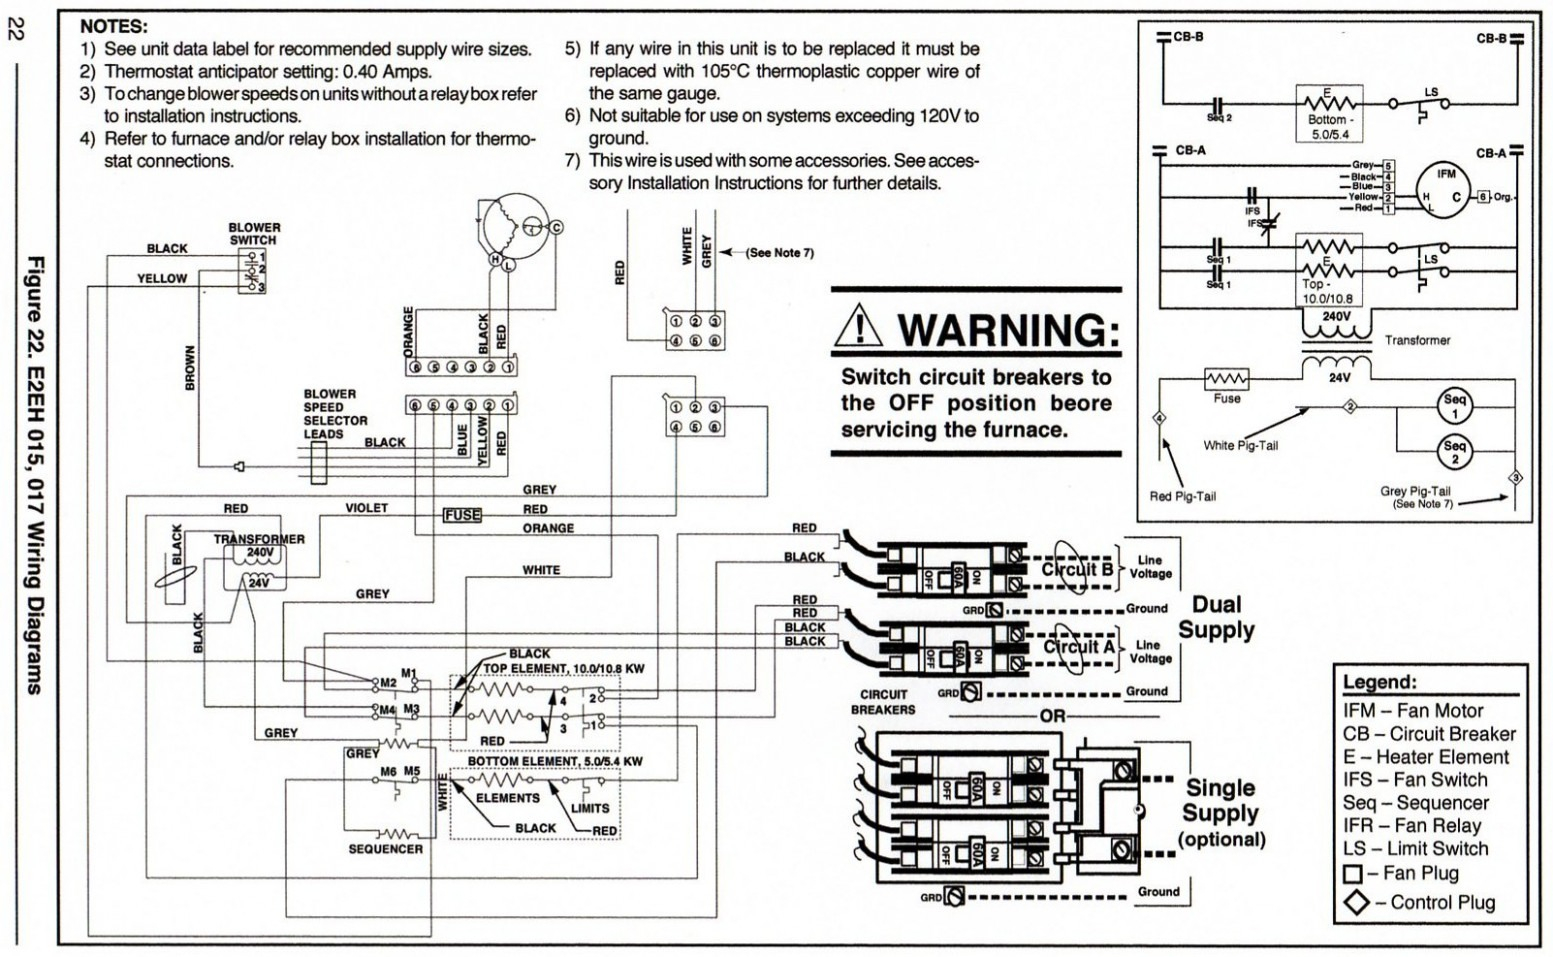 Home Wiring Red Black White Diagram For Mobile Furnace Gallery Sample